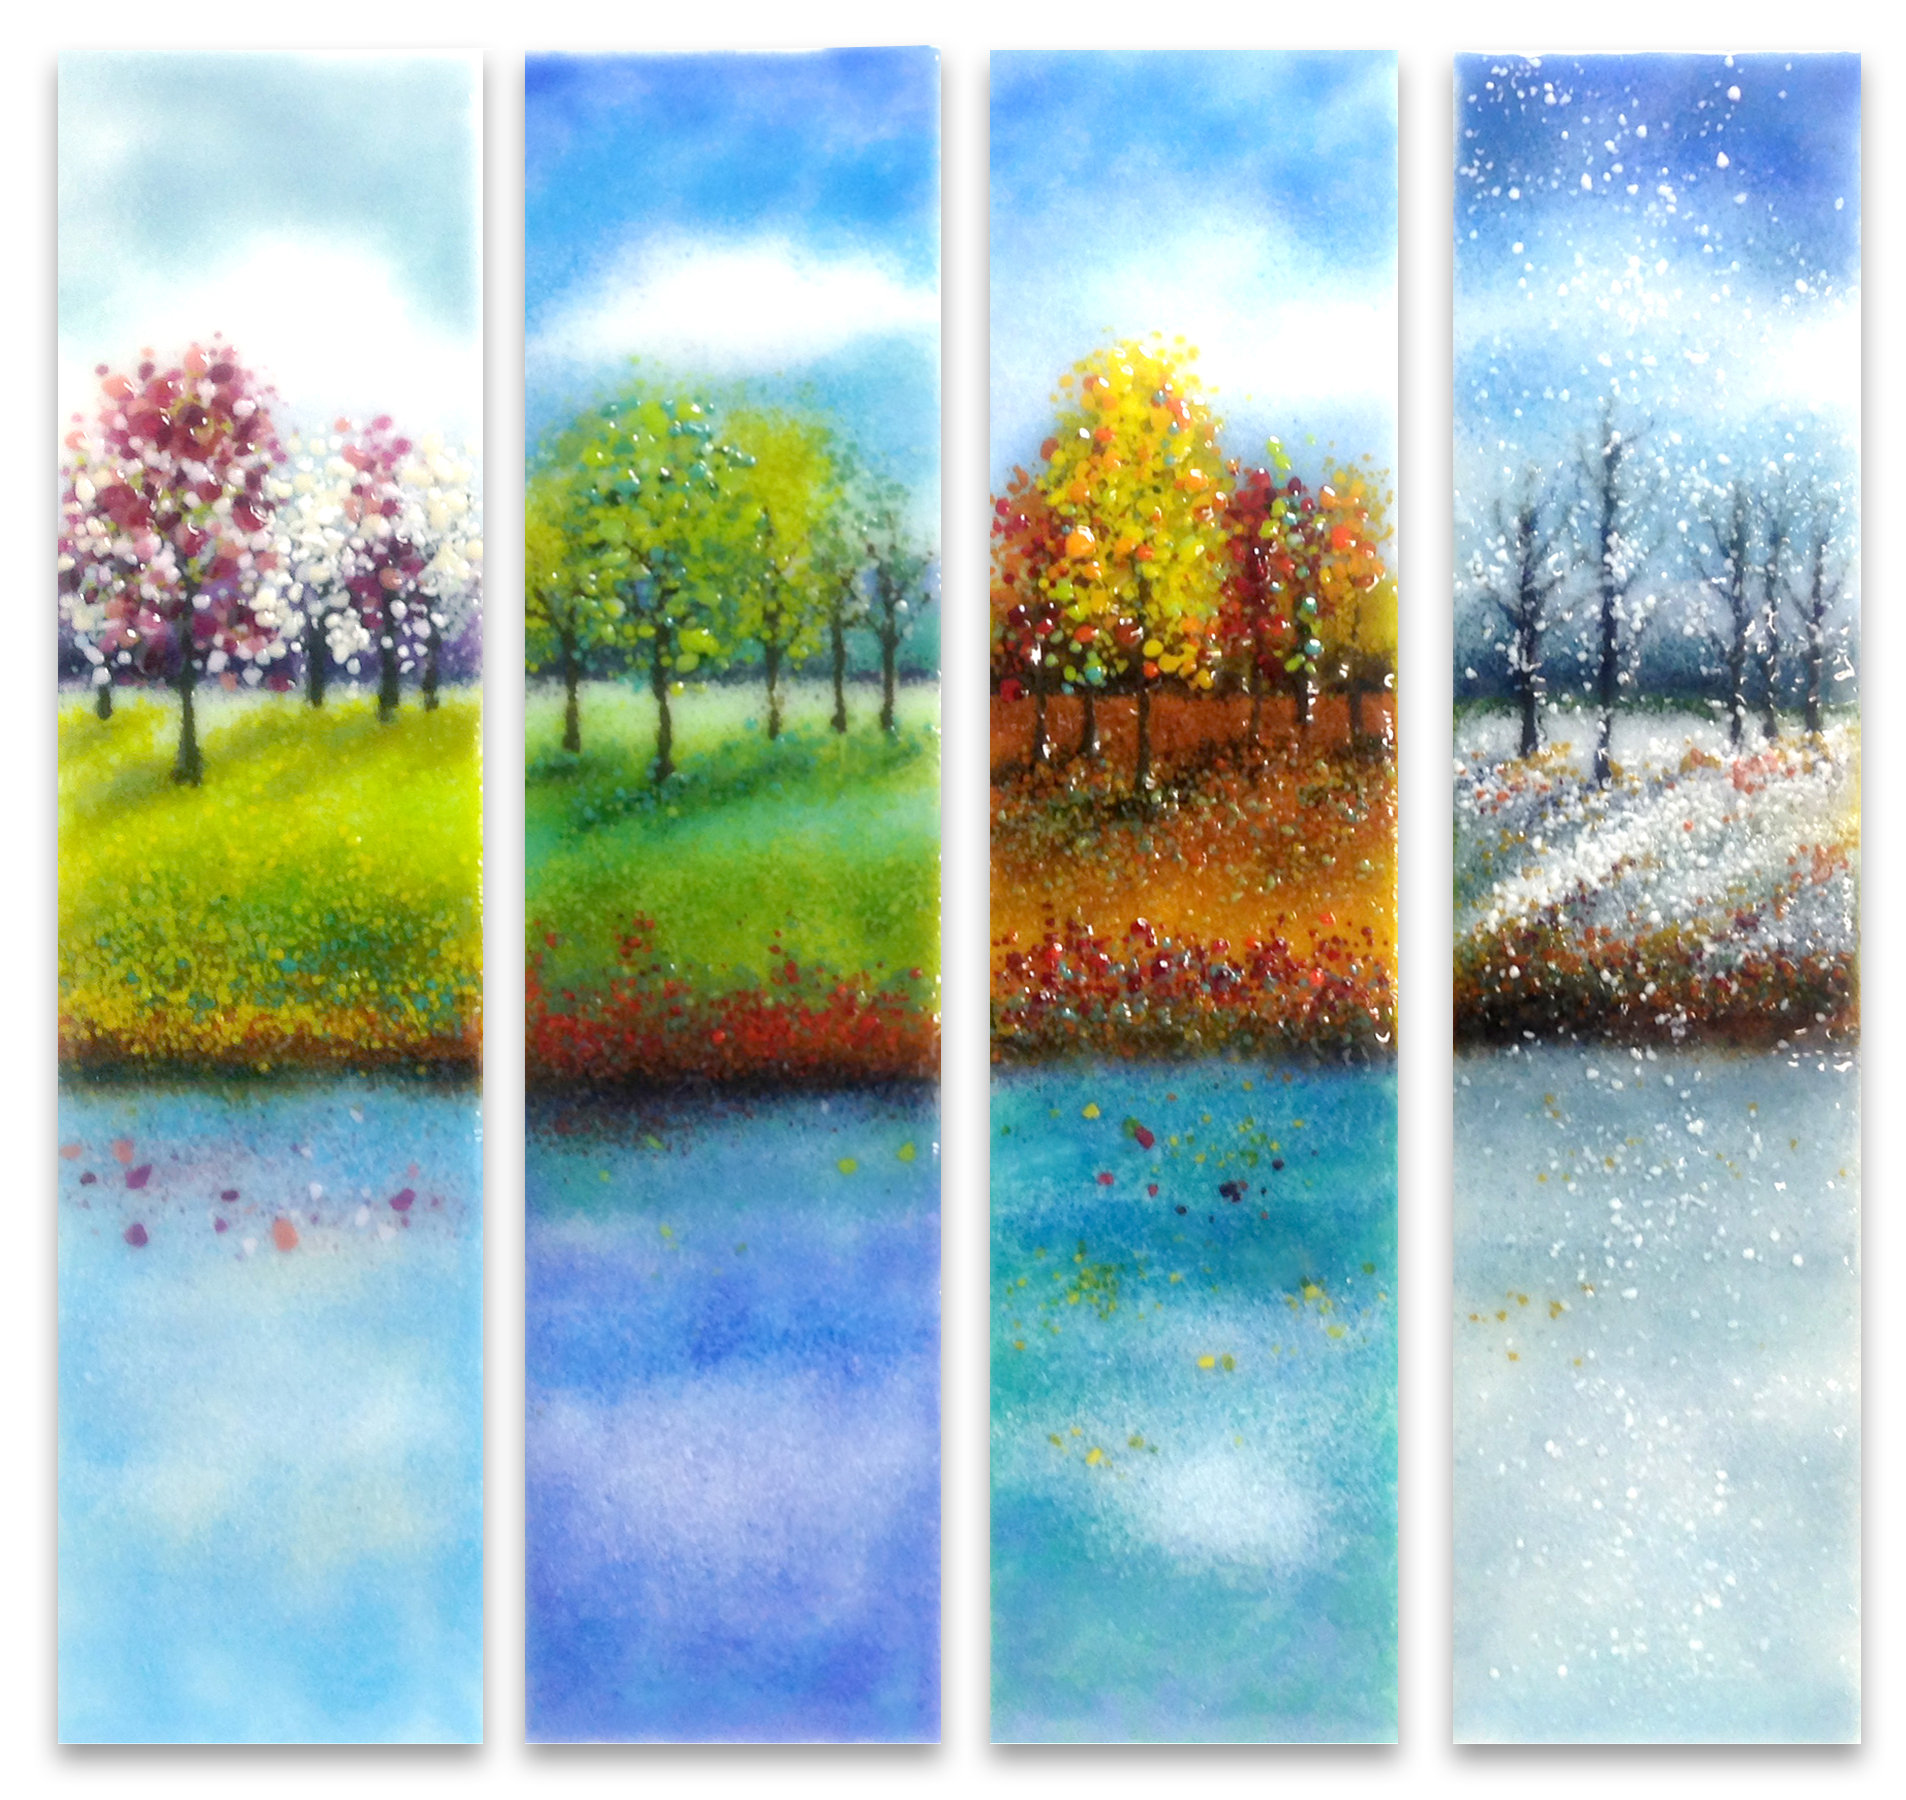 Four Seasons Glass Wall Art By Anne Nye Art Glass Wall Sculpture